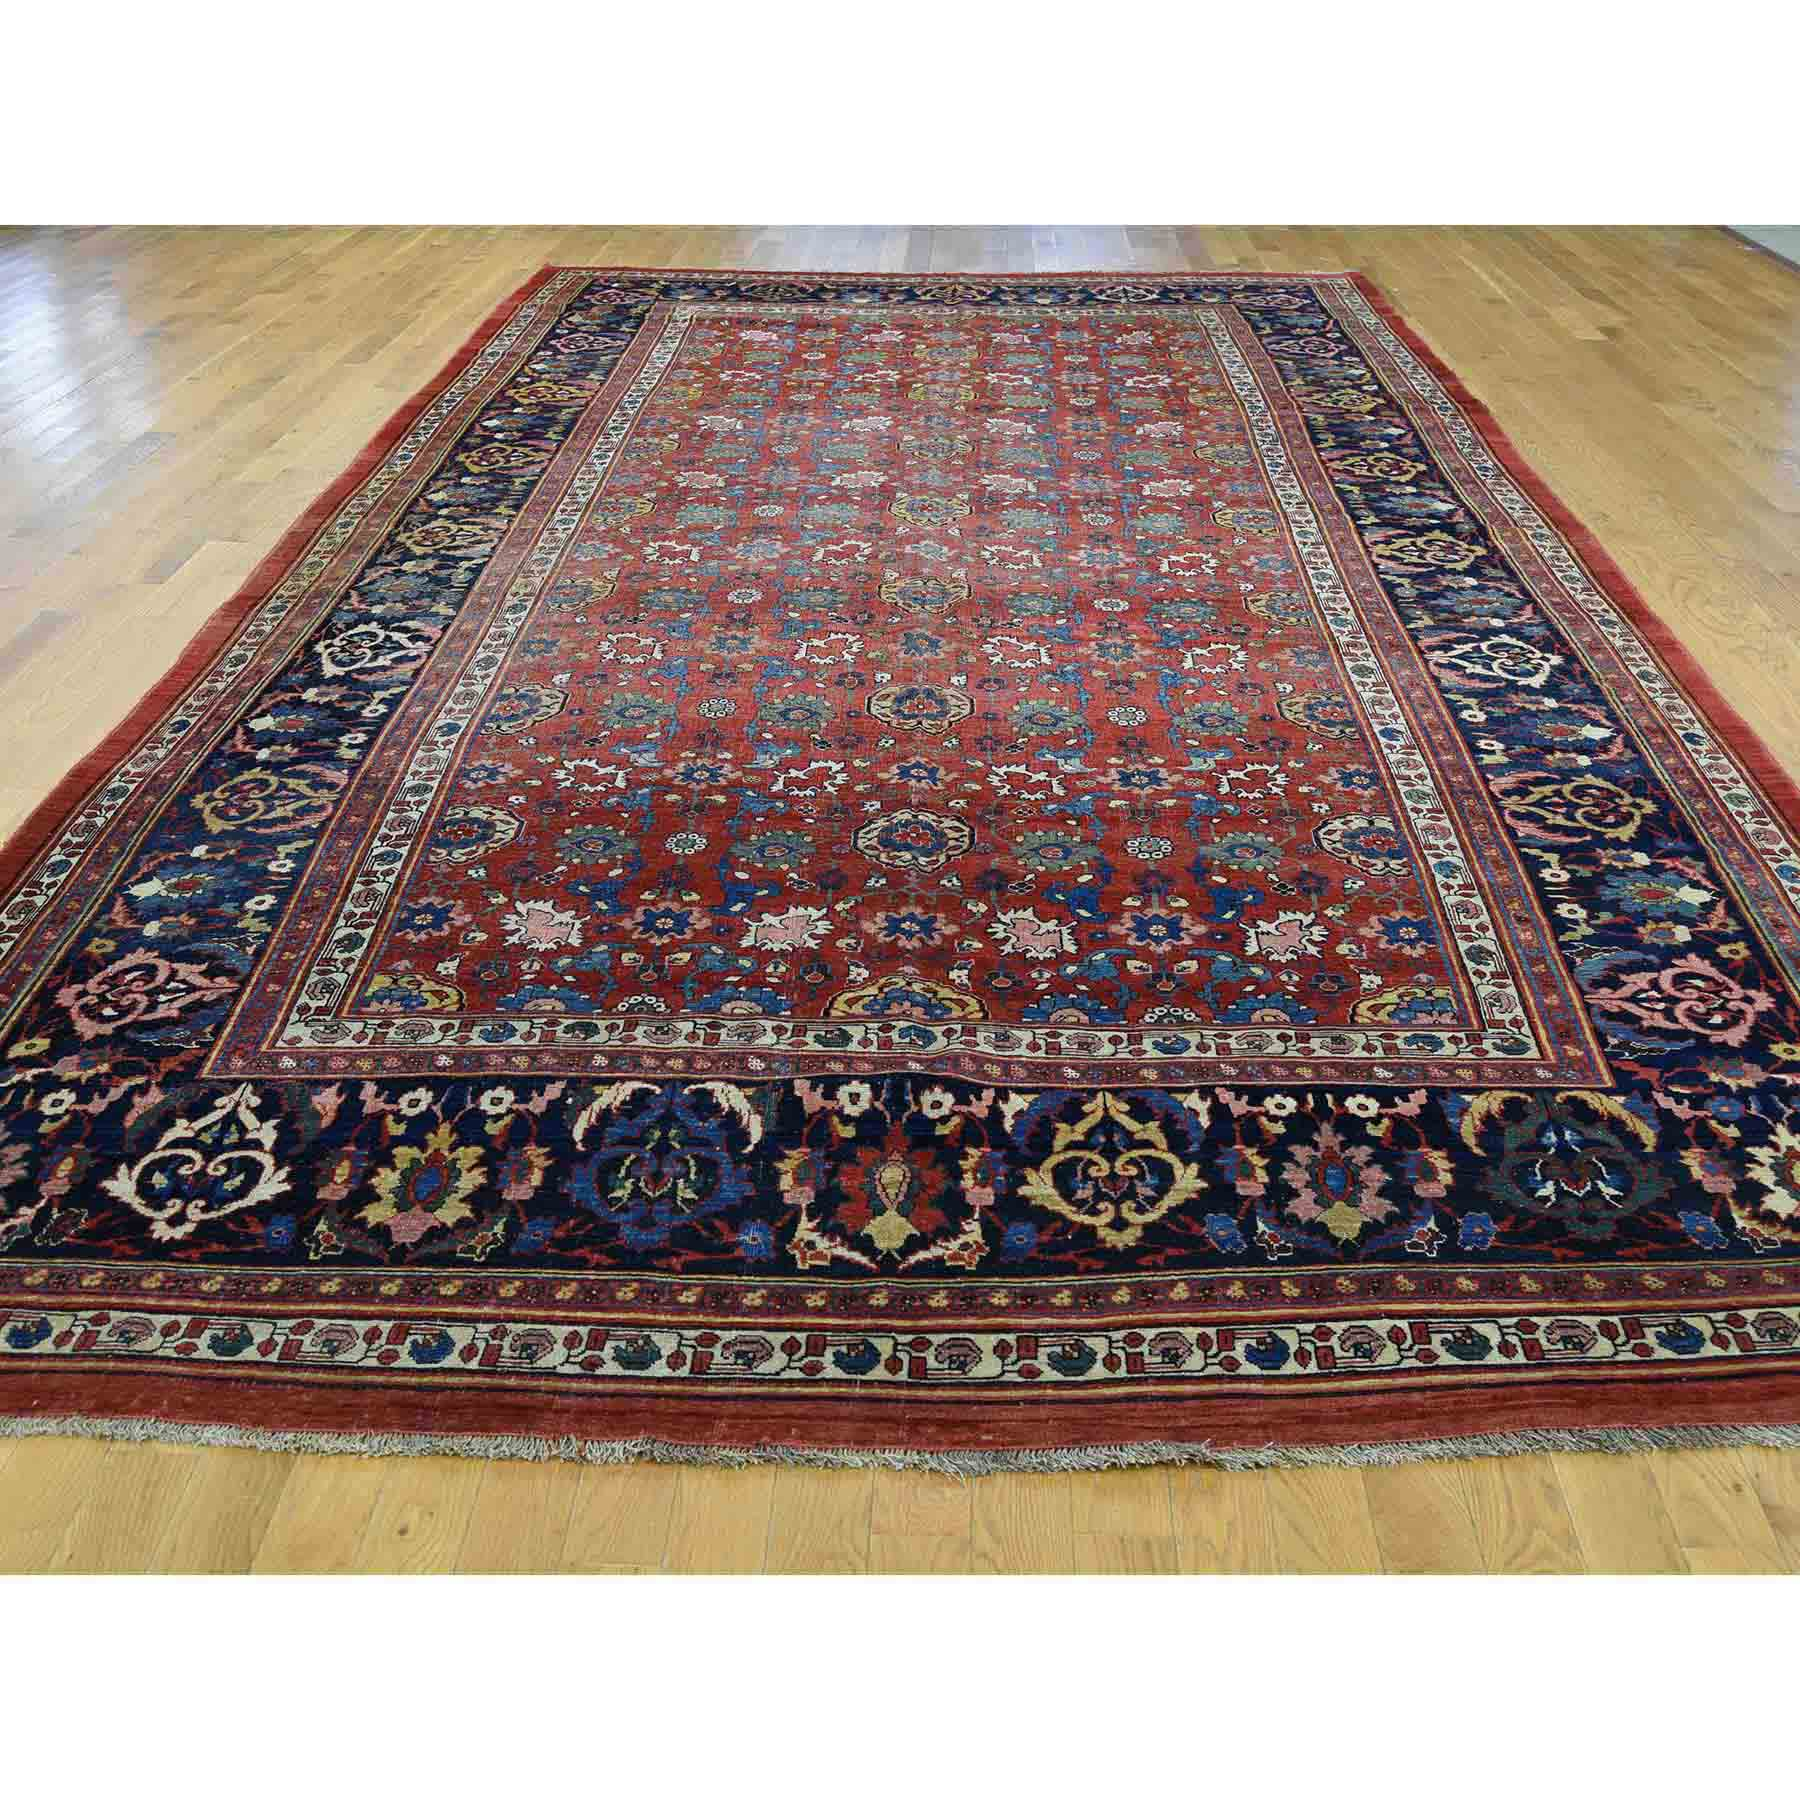 Antique-Hand-Knotted-Rug-195195